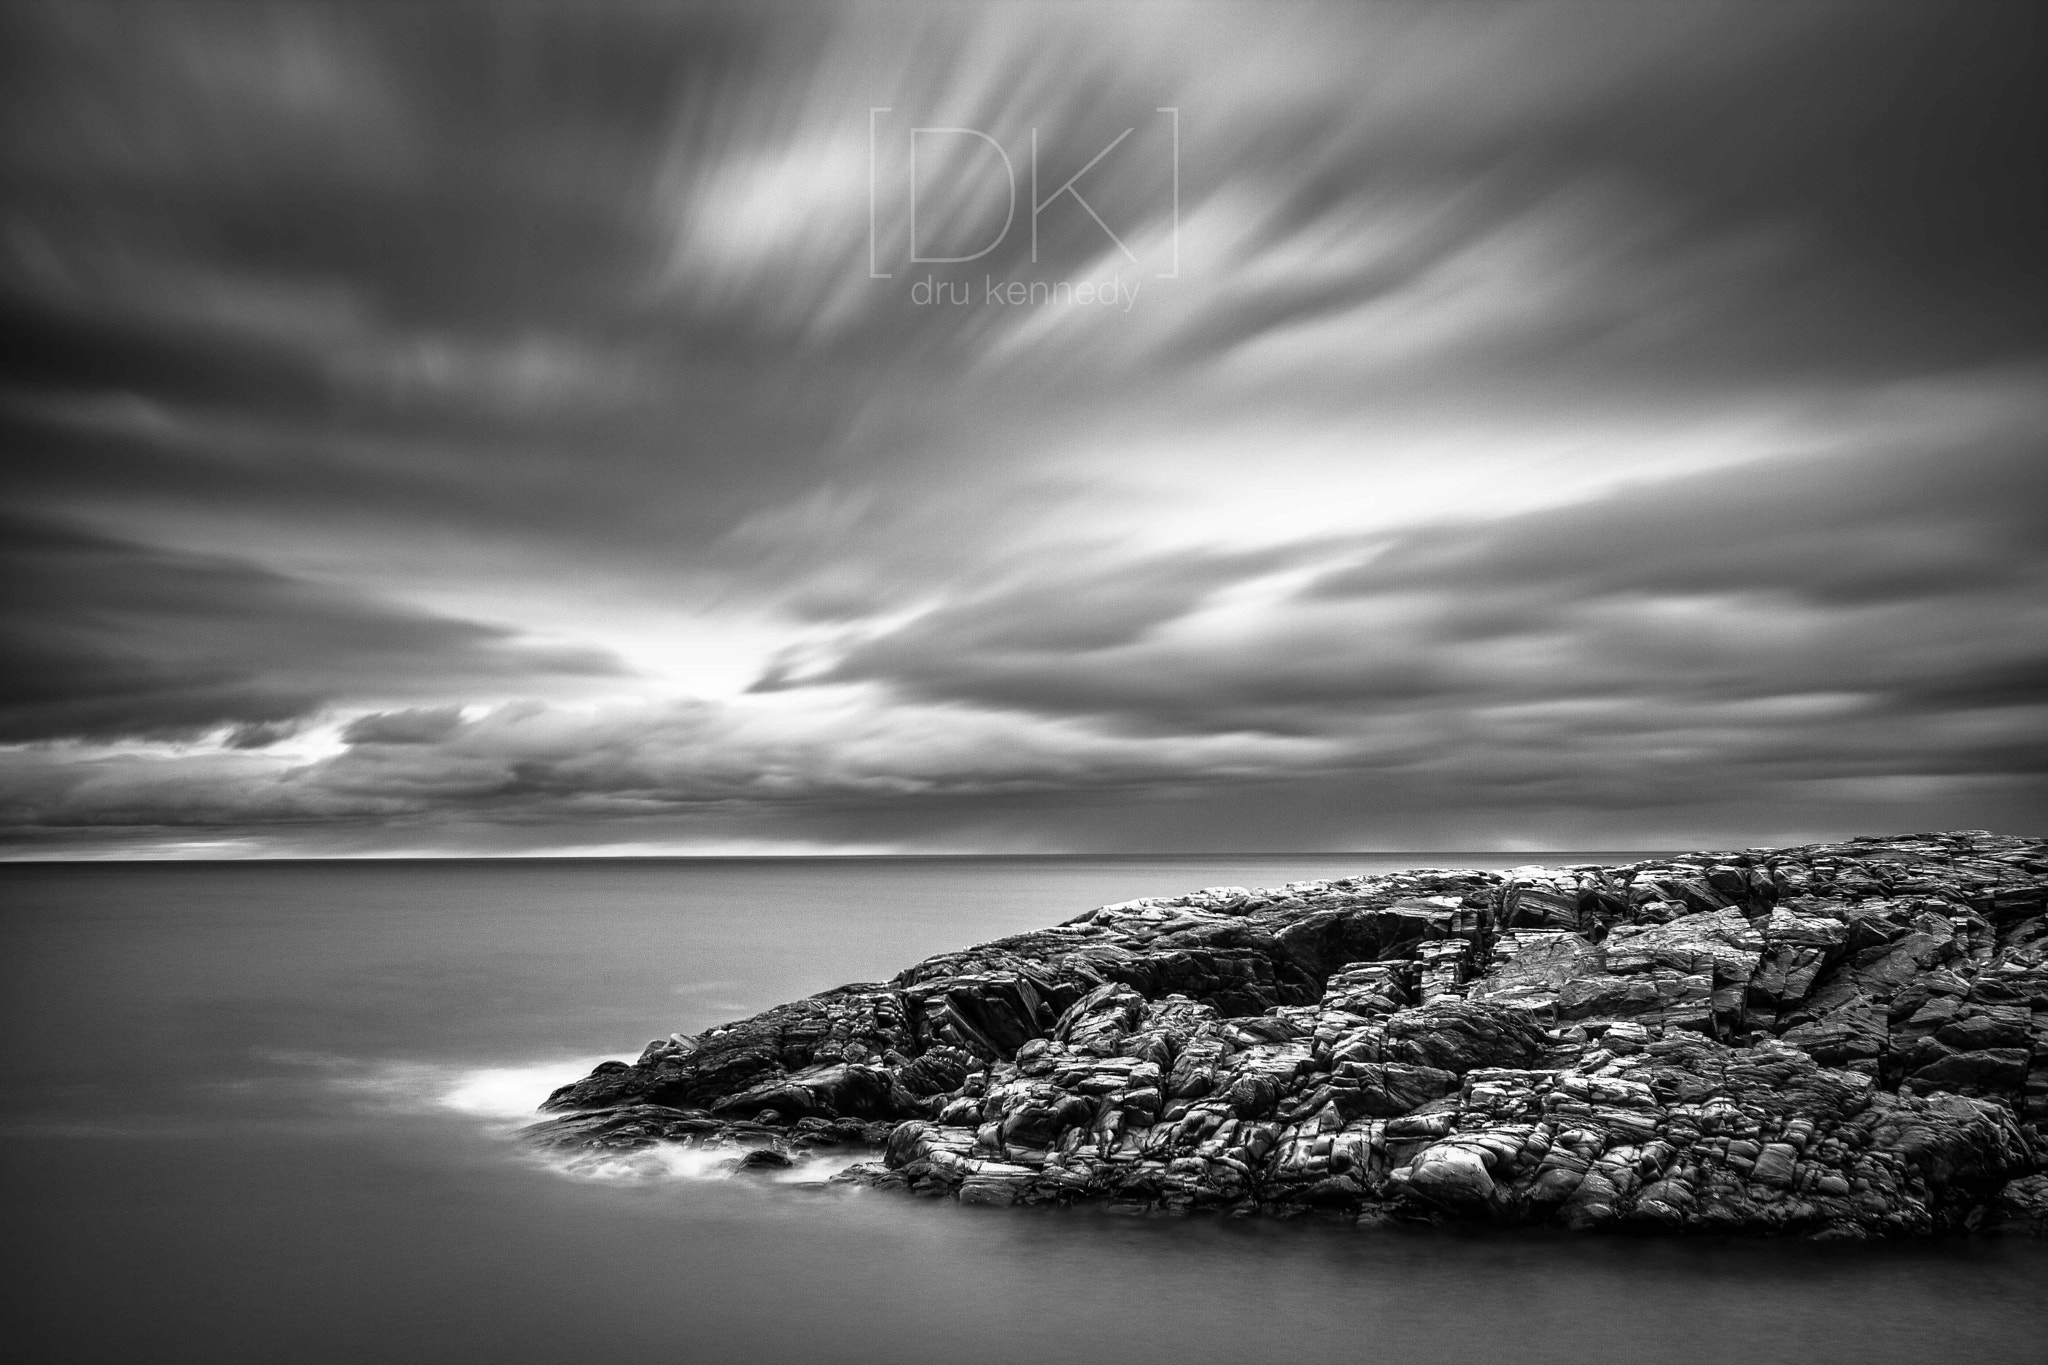 Photograph Confused Skies by Dru Kennedy on 500px